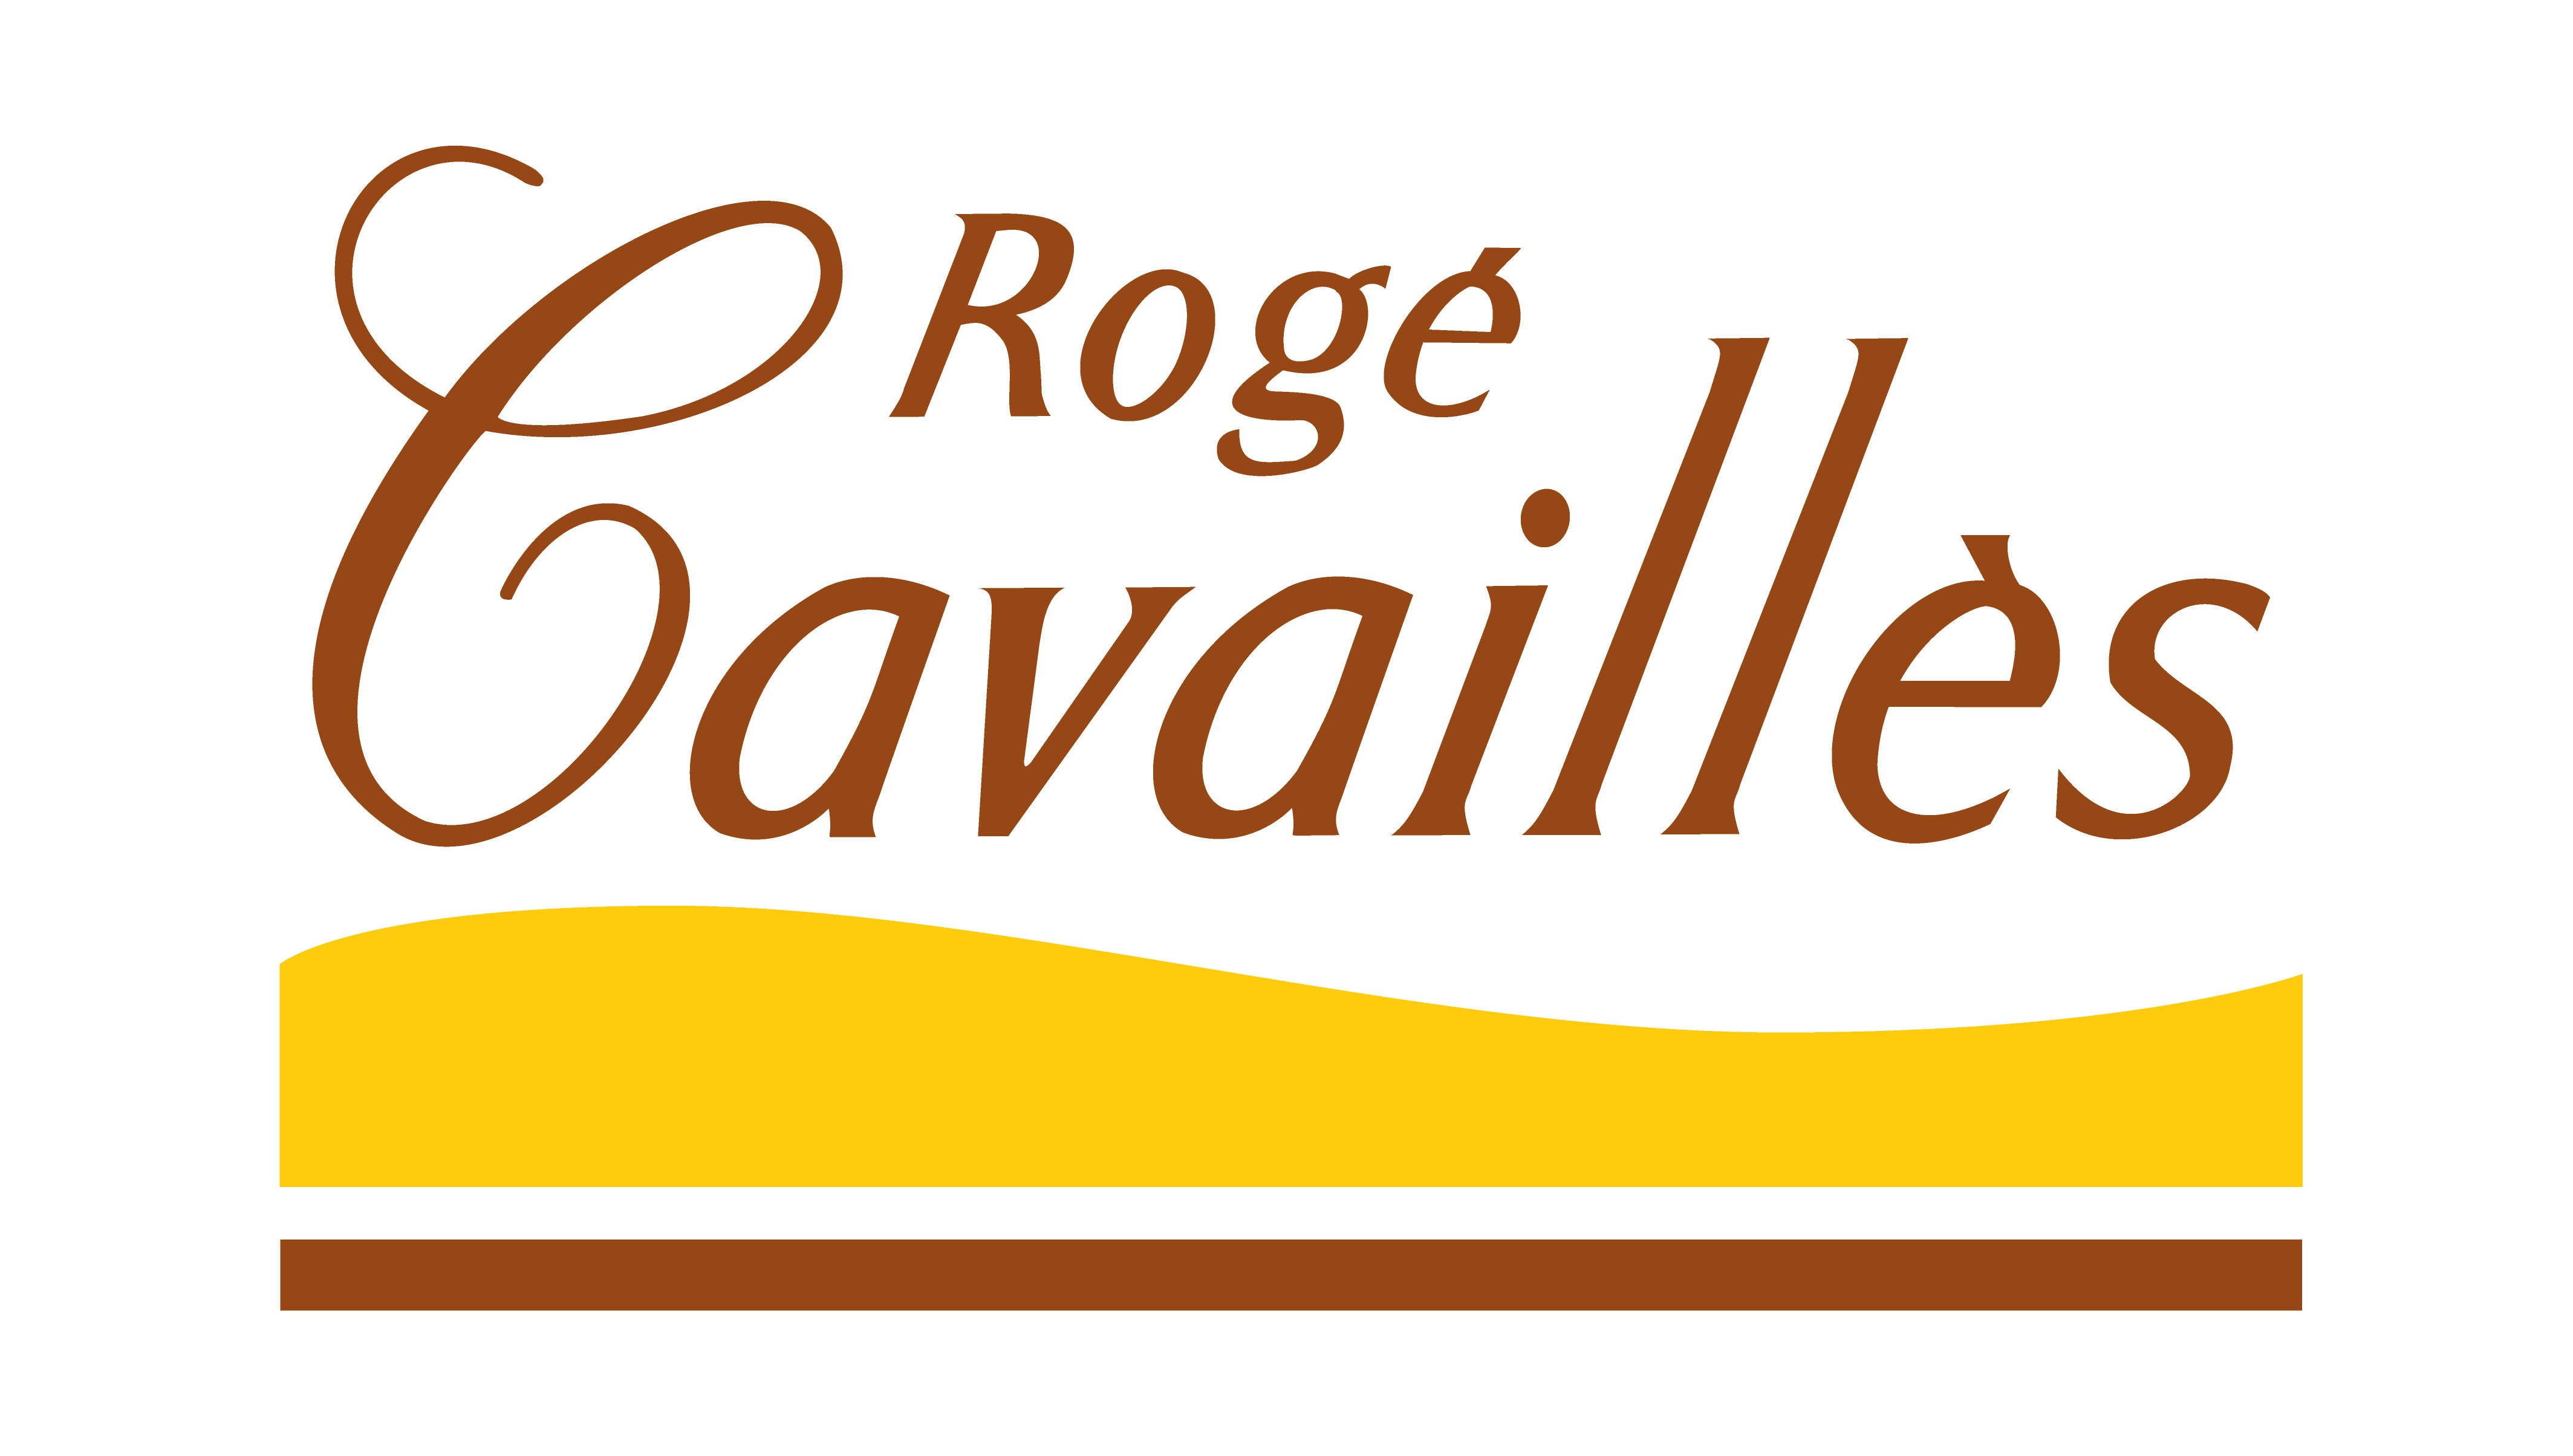 Productos Roge Cavailles